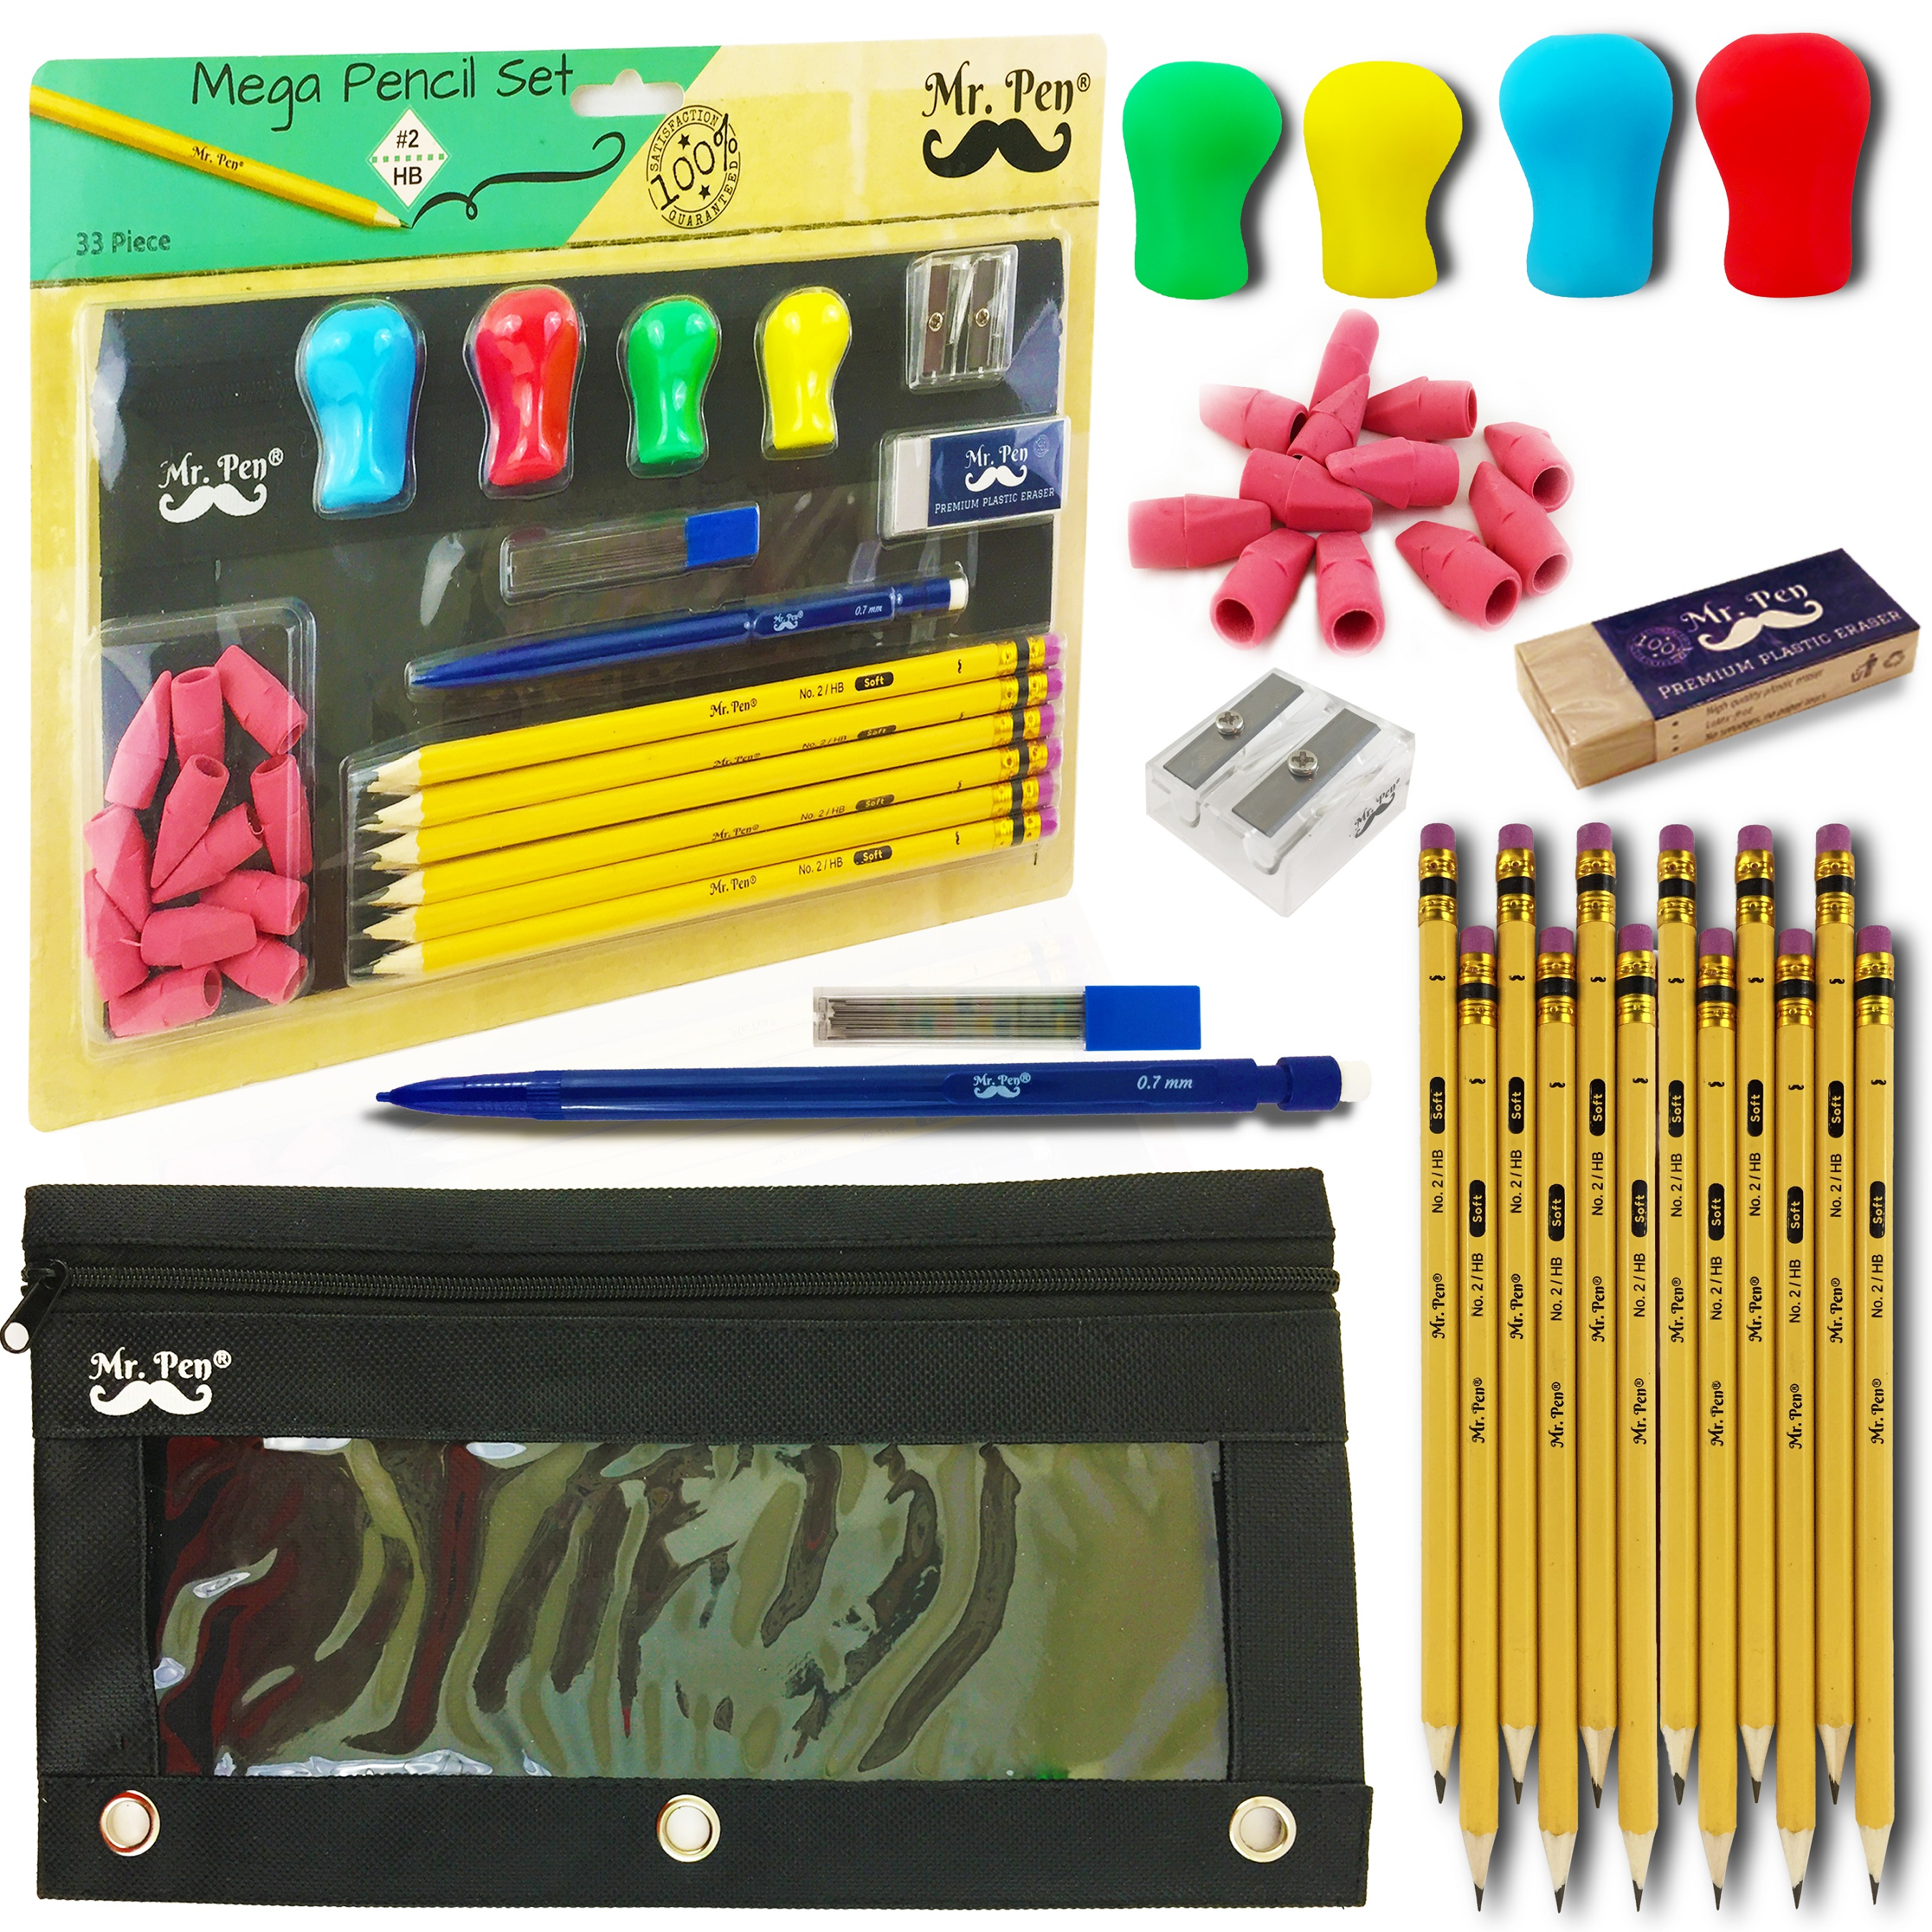 Mr. Pen- Complete Pencil Pack, 12 Pencils (#2 HB), 4 Silicone Pencil Grips, Pencil Case with Binder Holes, 12 Pencil Cap Erasers, Mechanical Pencil (0.7mm), Lead Refill, 1 Eraser, 1 Pencil Sharpener